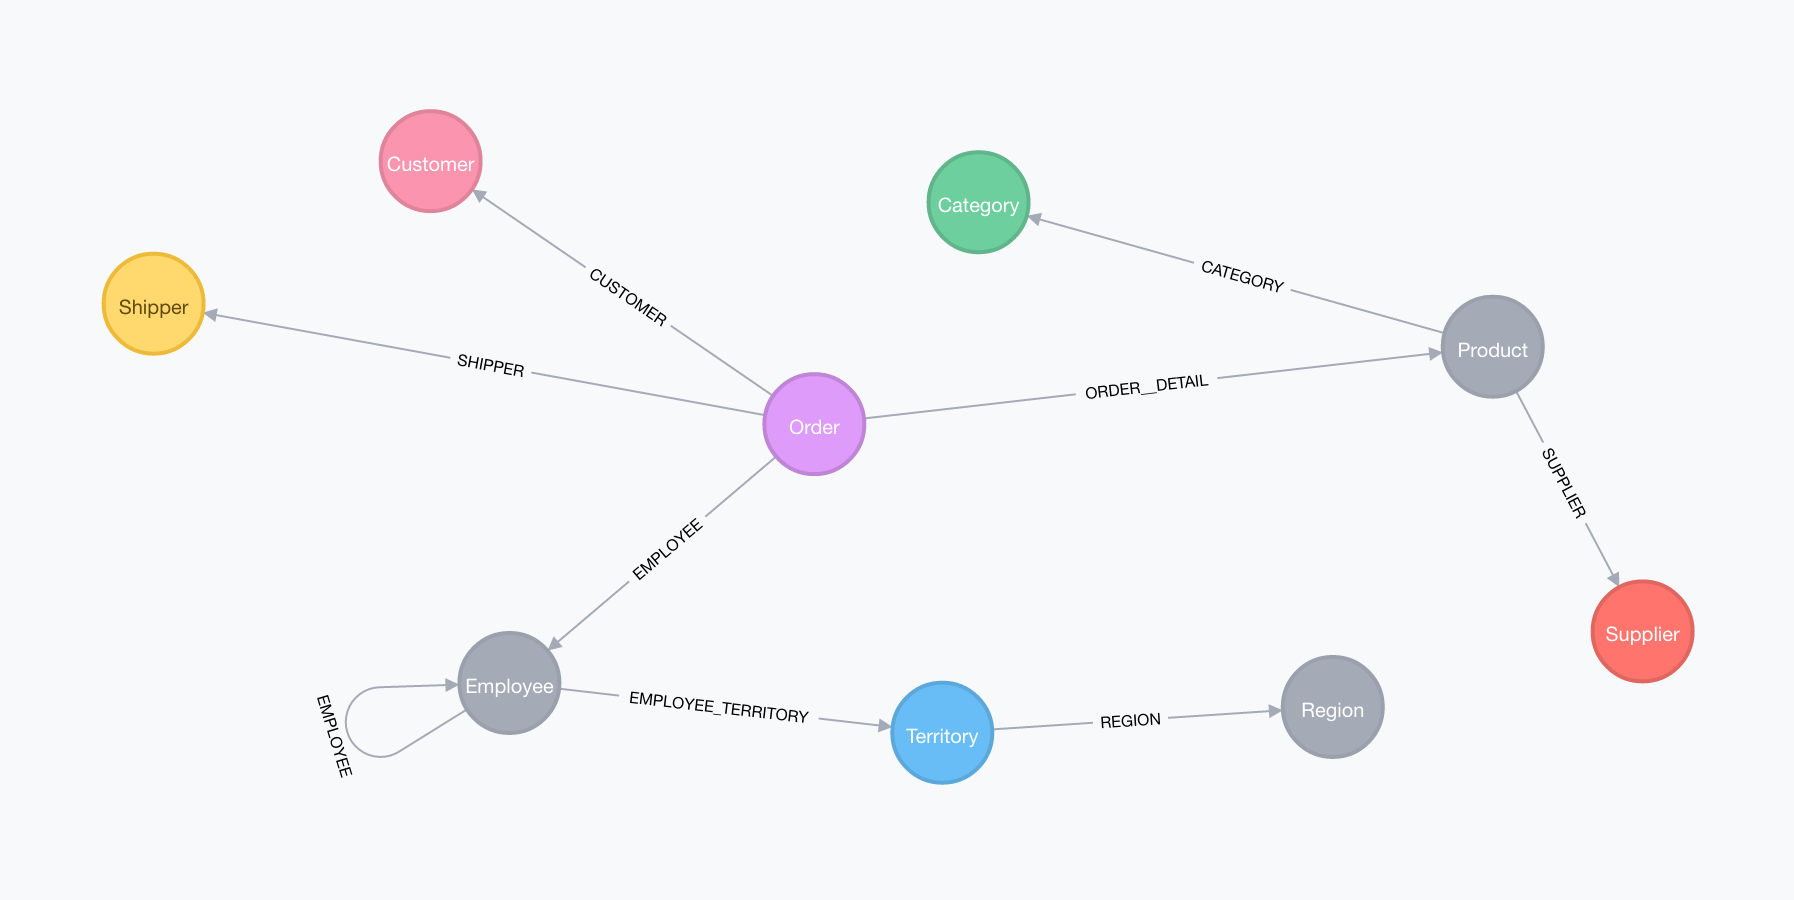 Learn about the new Extract, Transform, Load (ETL) tool for migrating data from RDBMS to Neo4j